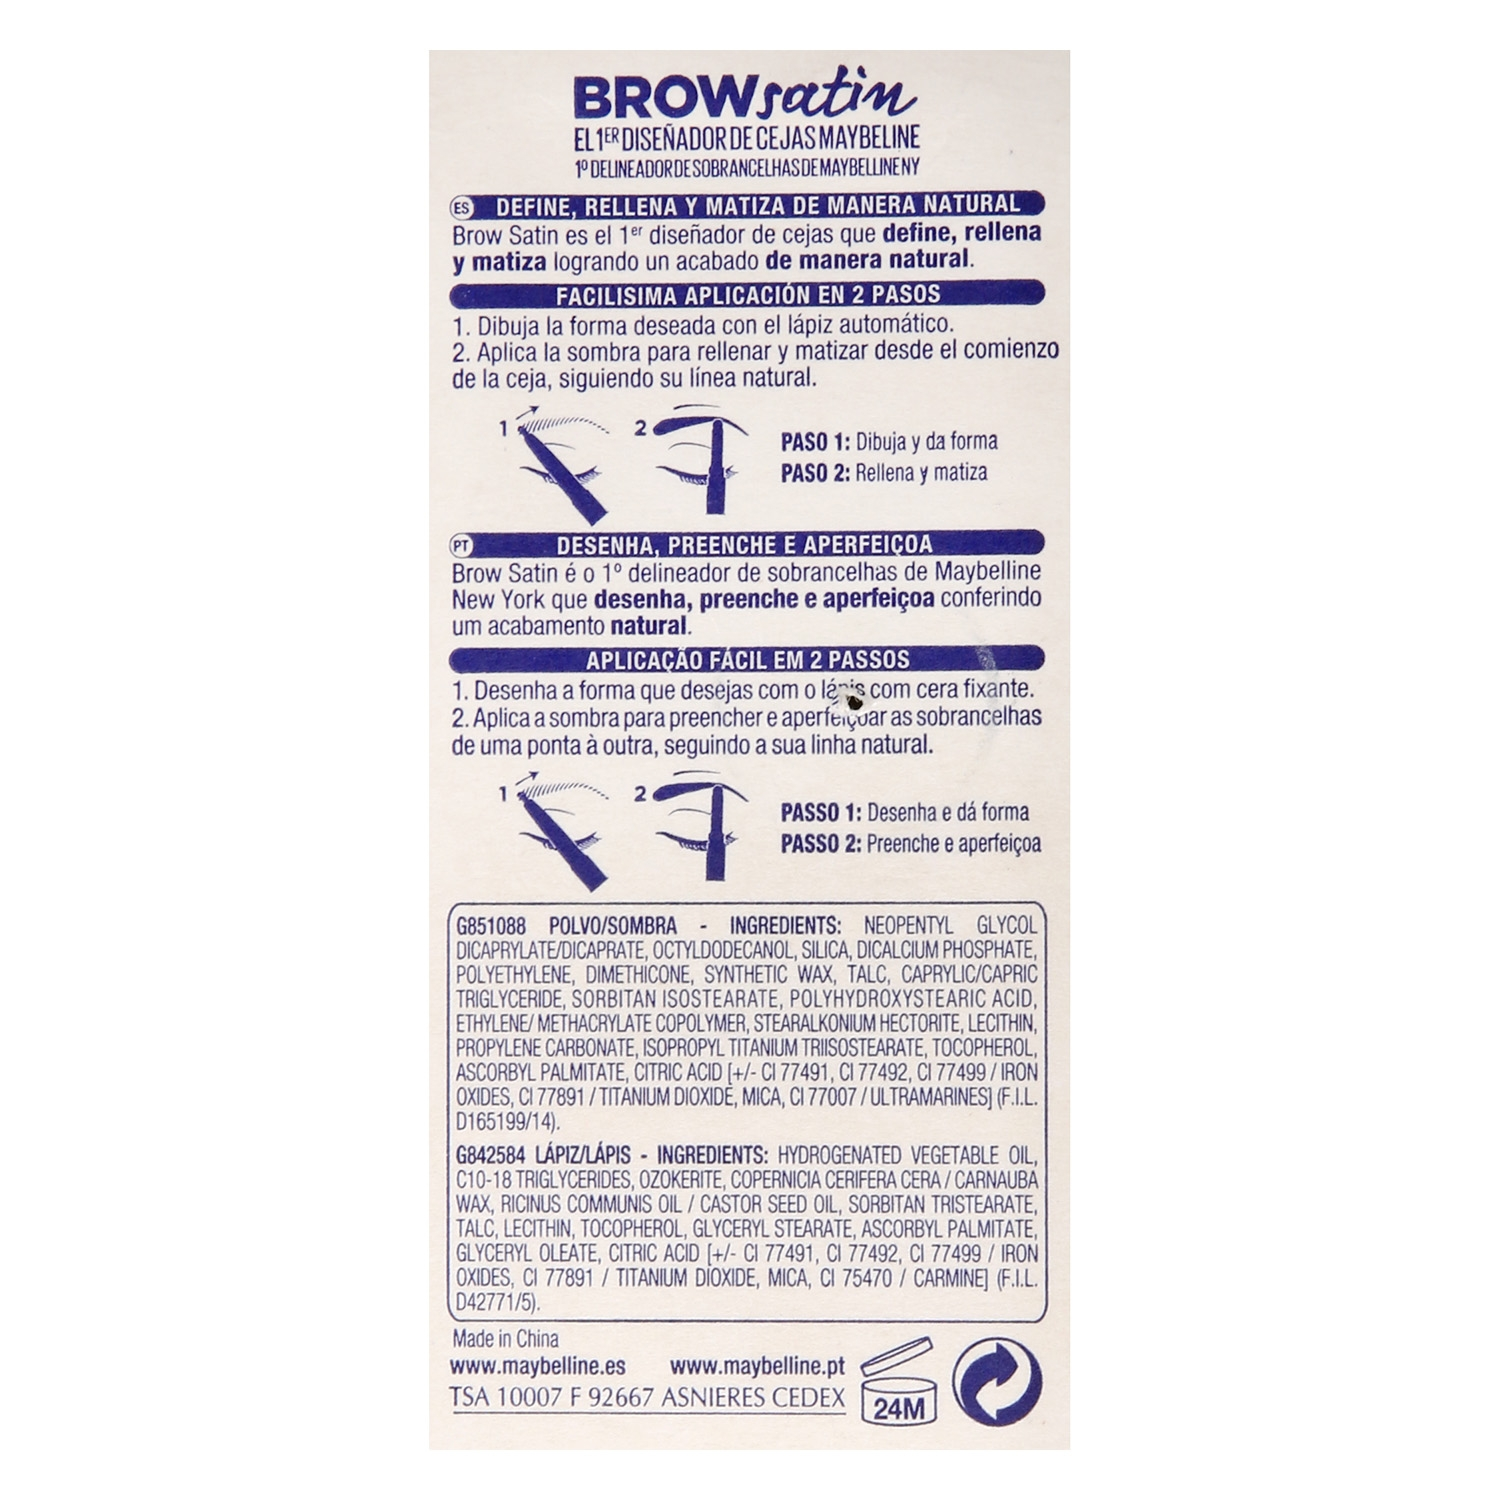 Diseñador de cejas Brow satin medium brown -